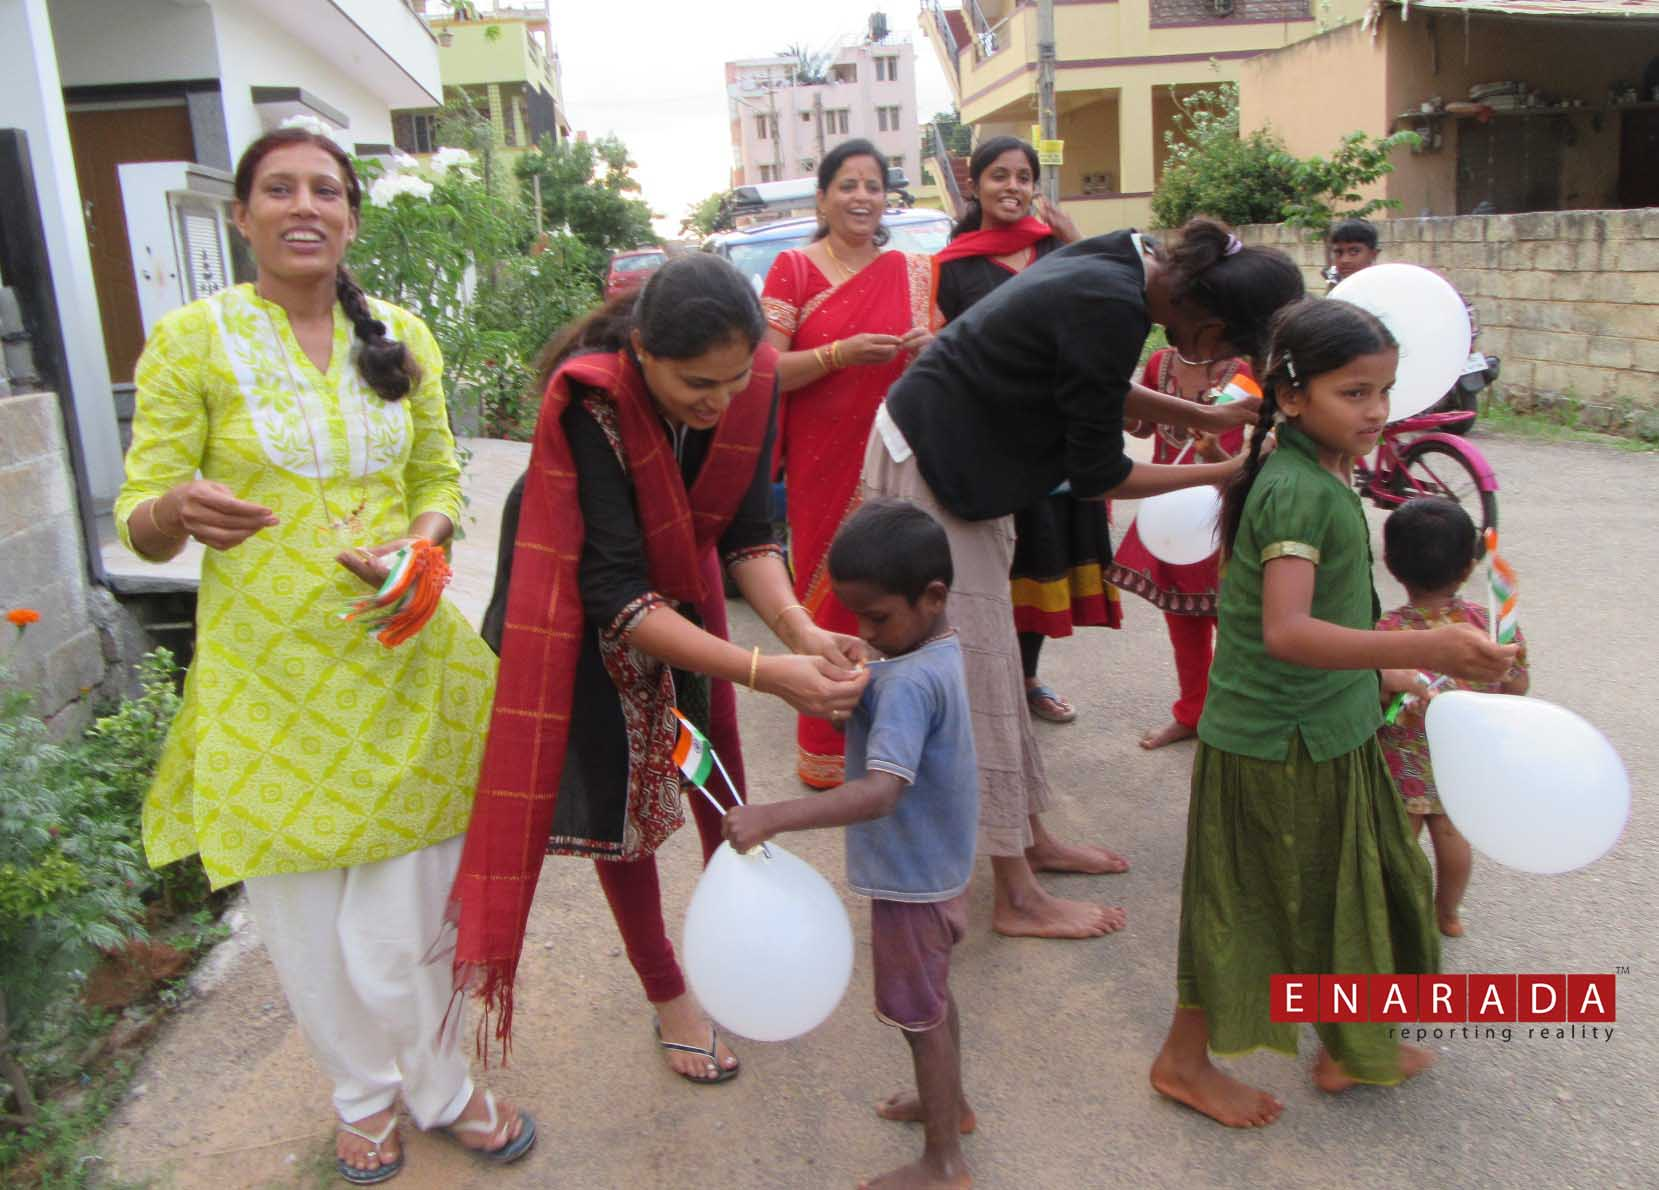 Art of Giving volunteers celebrating I-day with street kids. pho